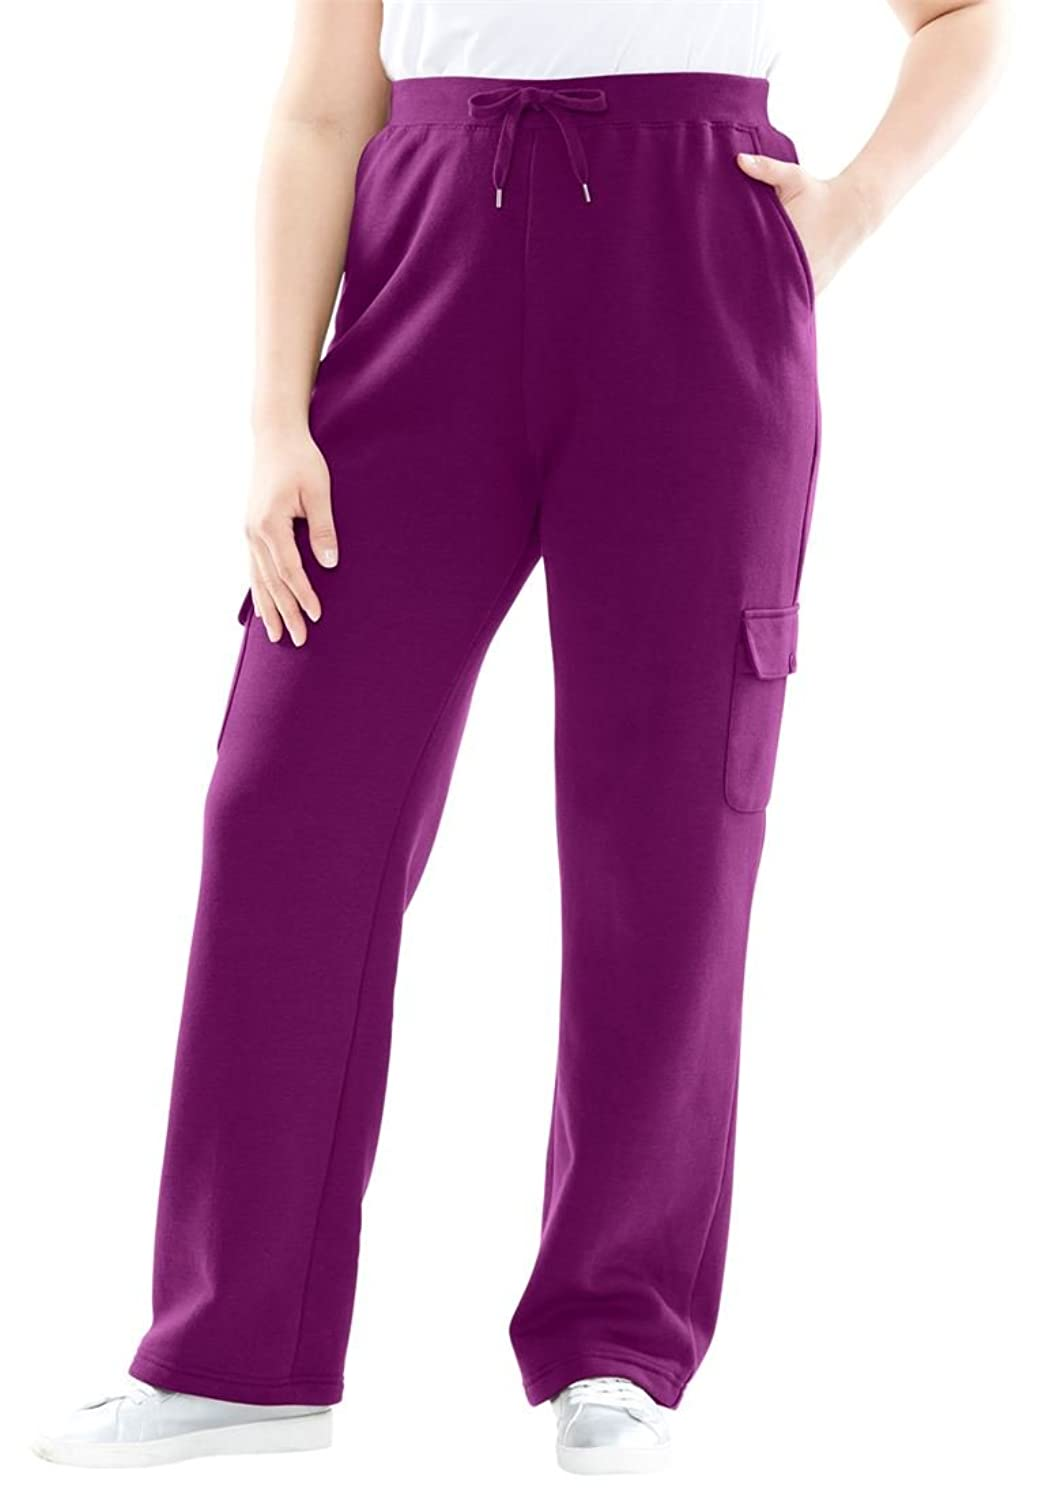 Women's Plus Size Pants In Soft Knit Better Fleece With Cargo Pockets,